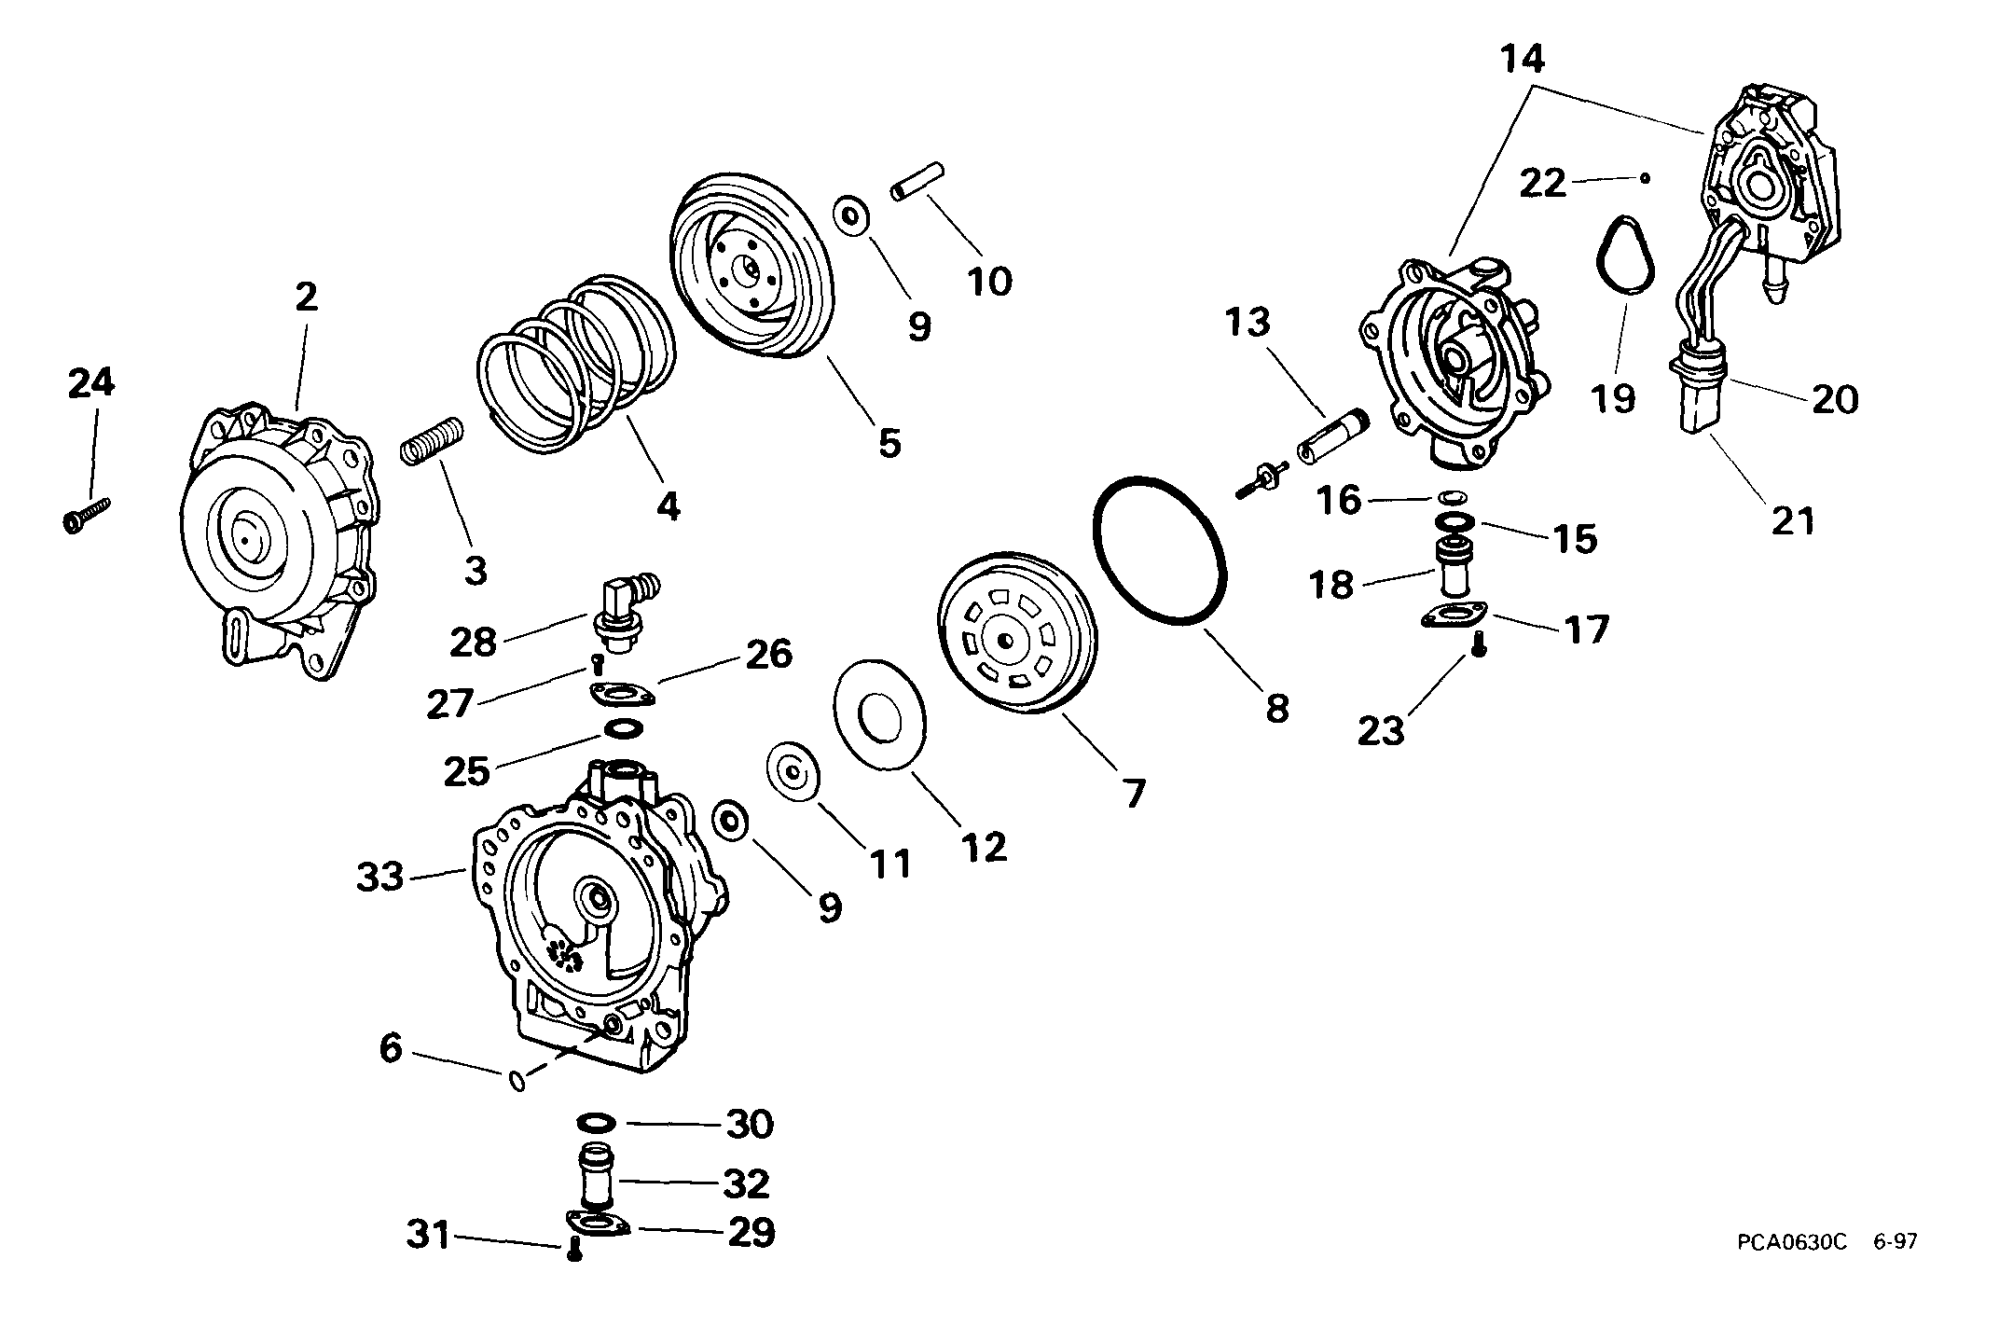 hight resolution of johnson vro fuel pump diagram wiring diagram for you fuel pump repair kits fuel systems 1999